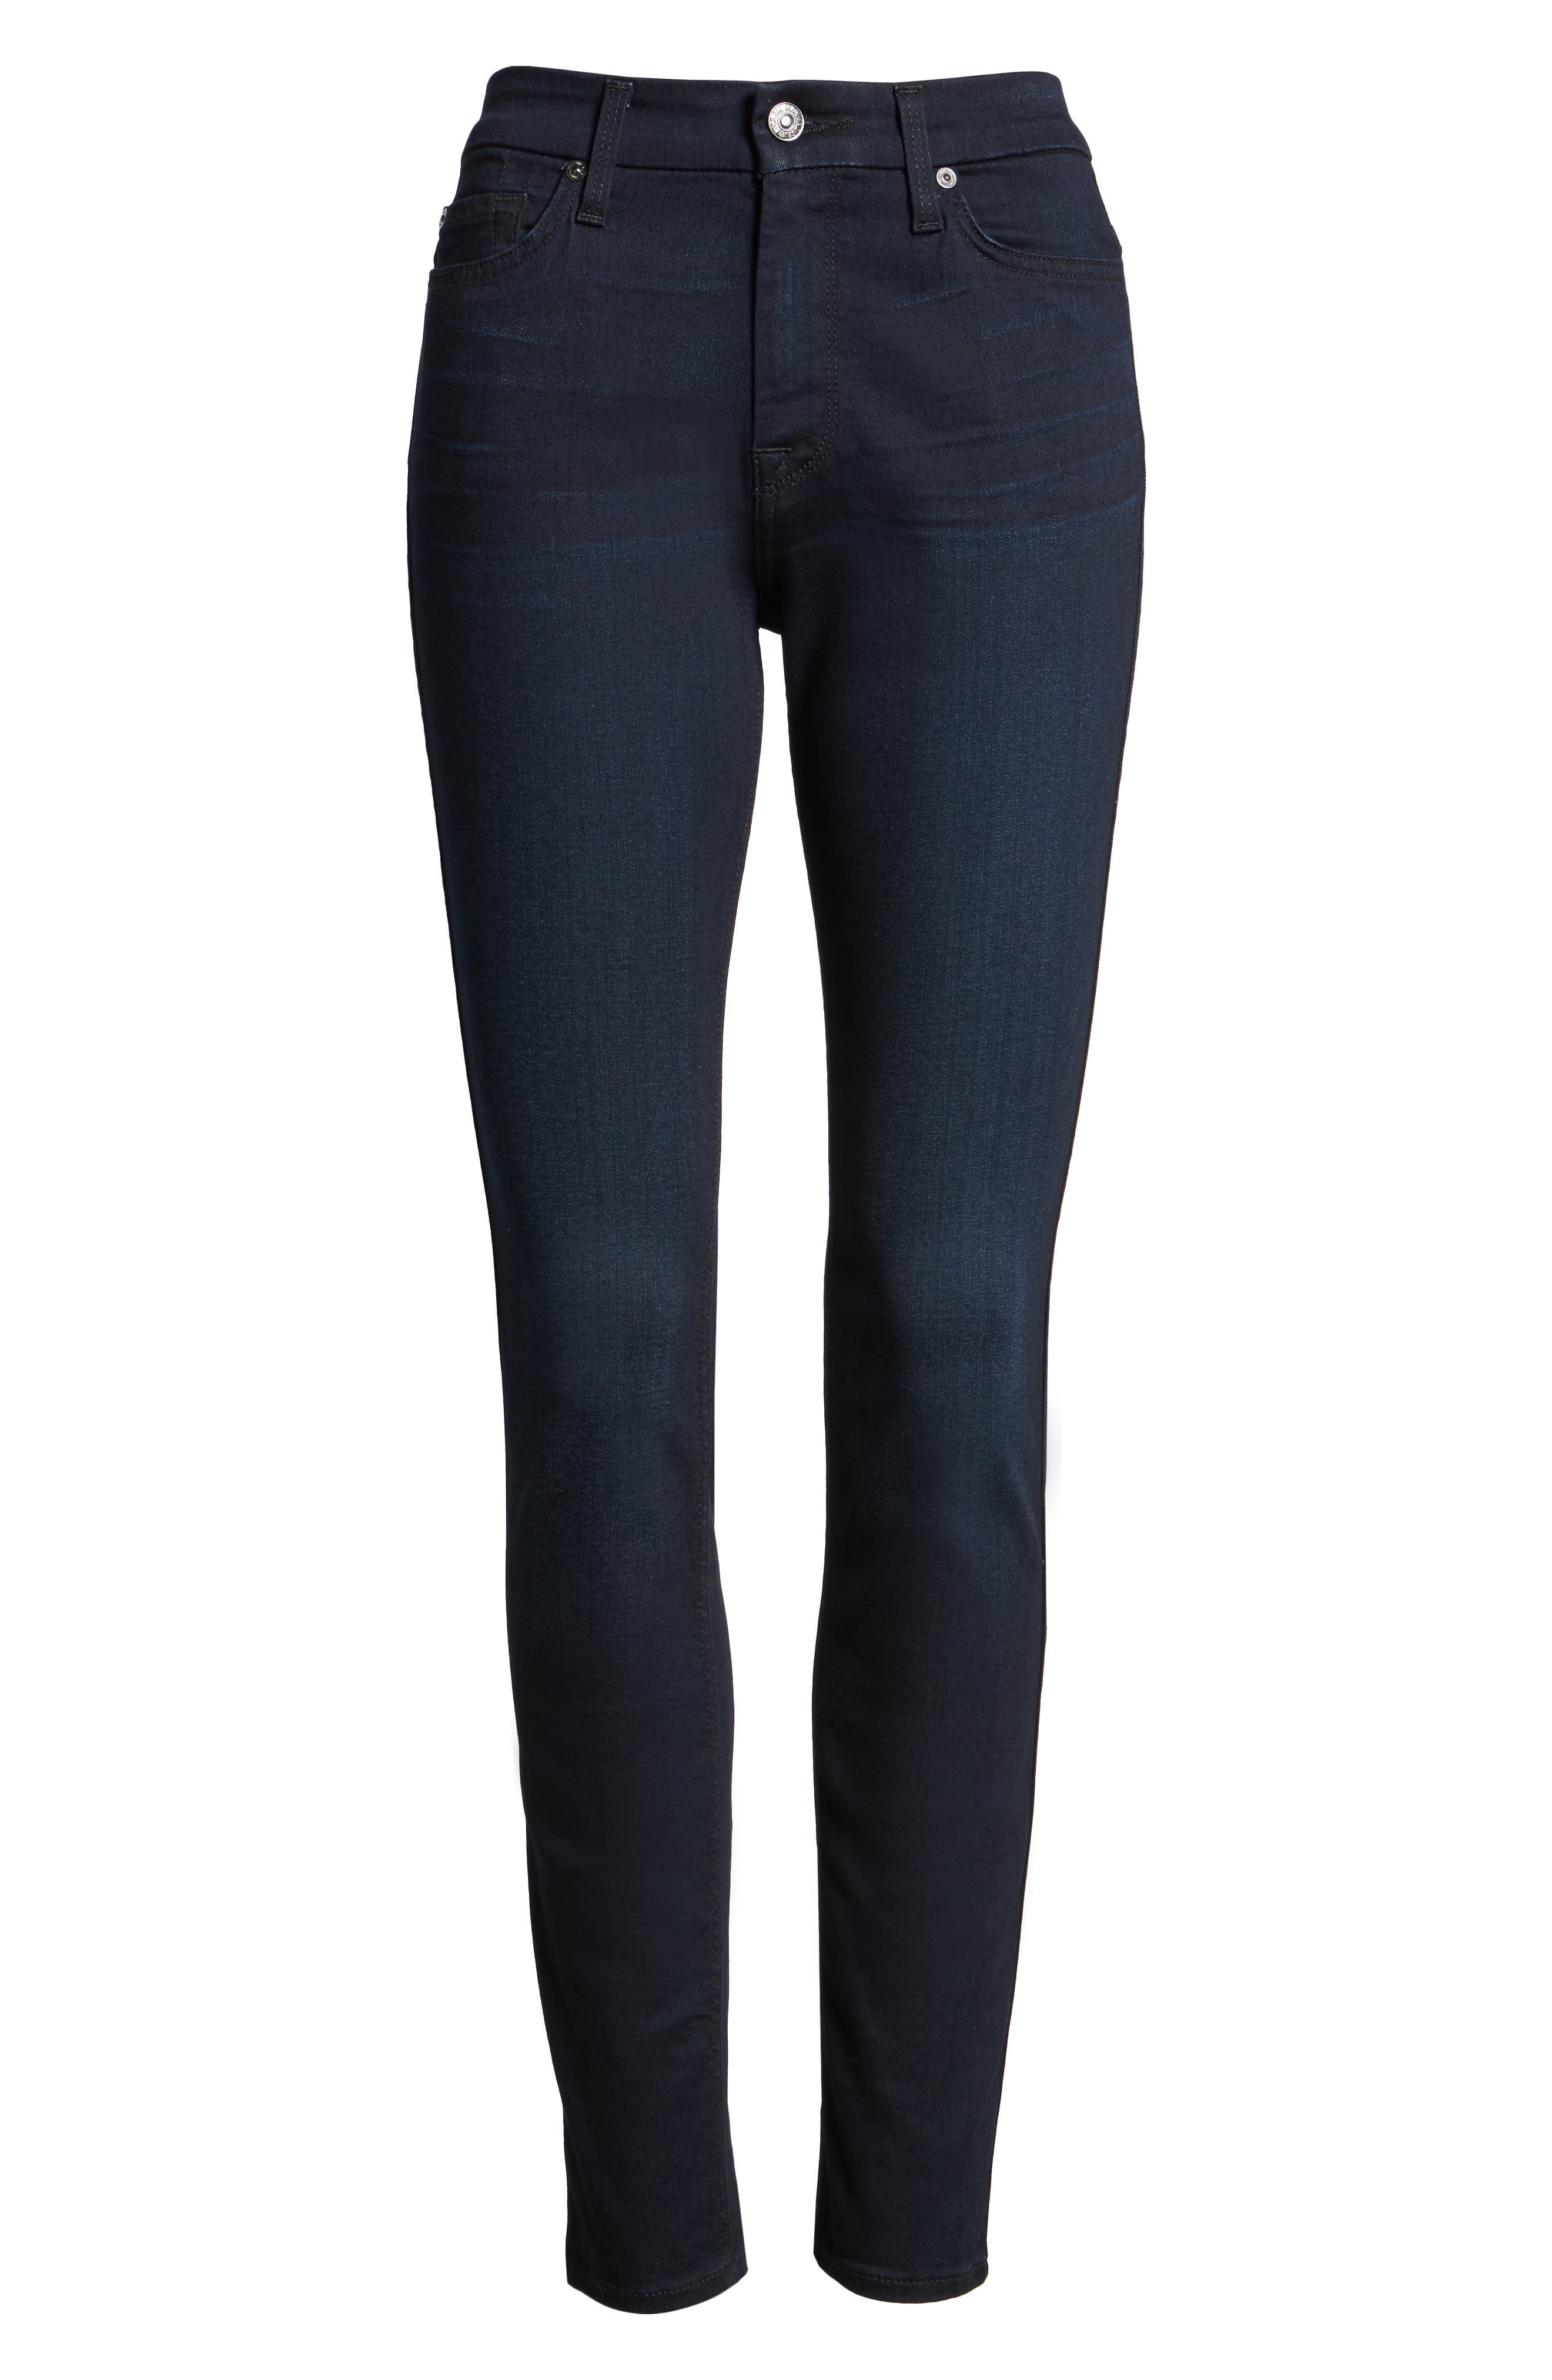 7 For All Mankind b(air) High Waist Skinny Jeans,                         Main,                         color, 400